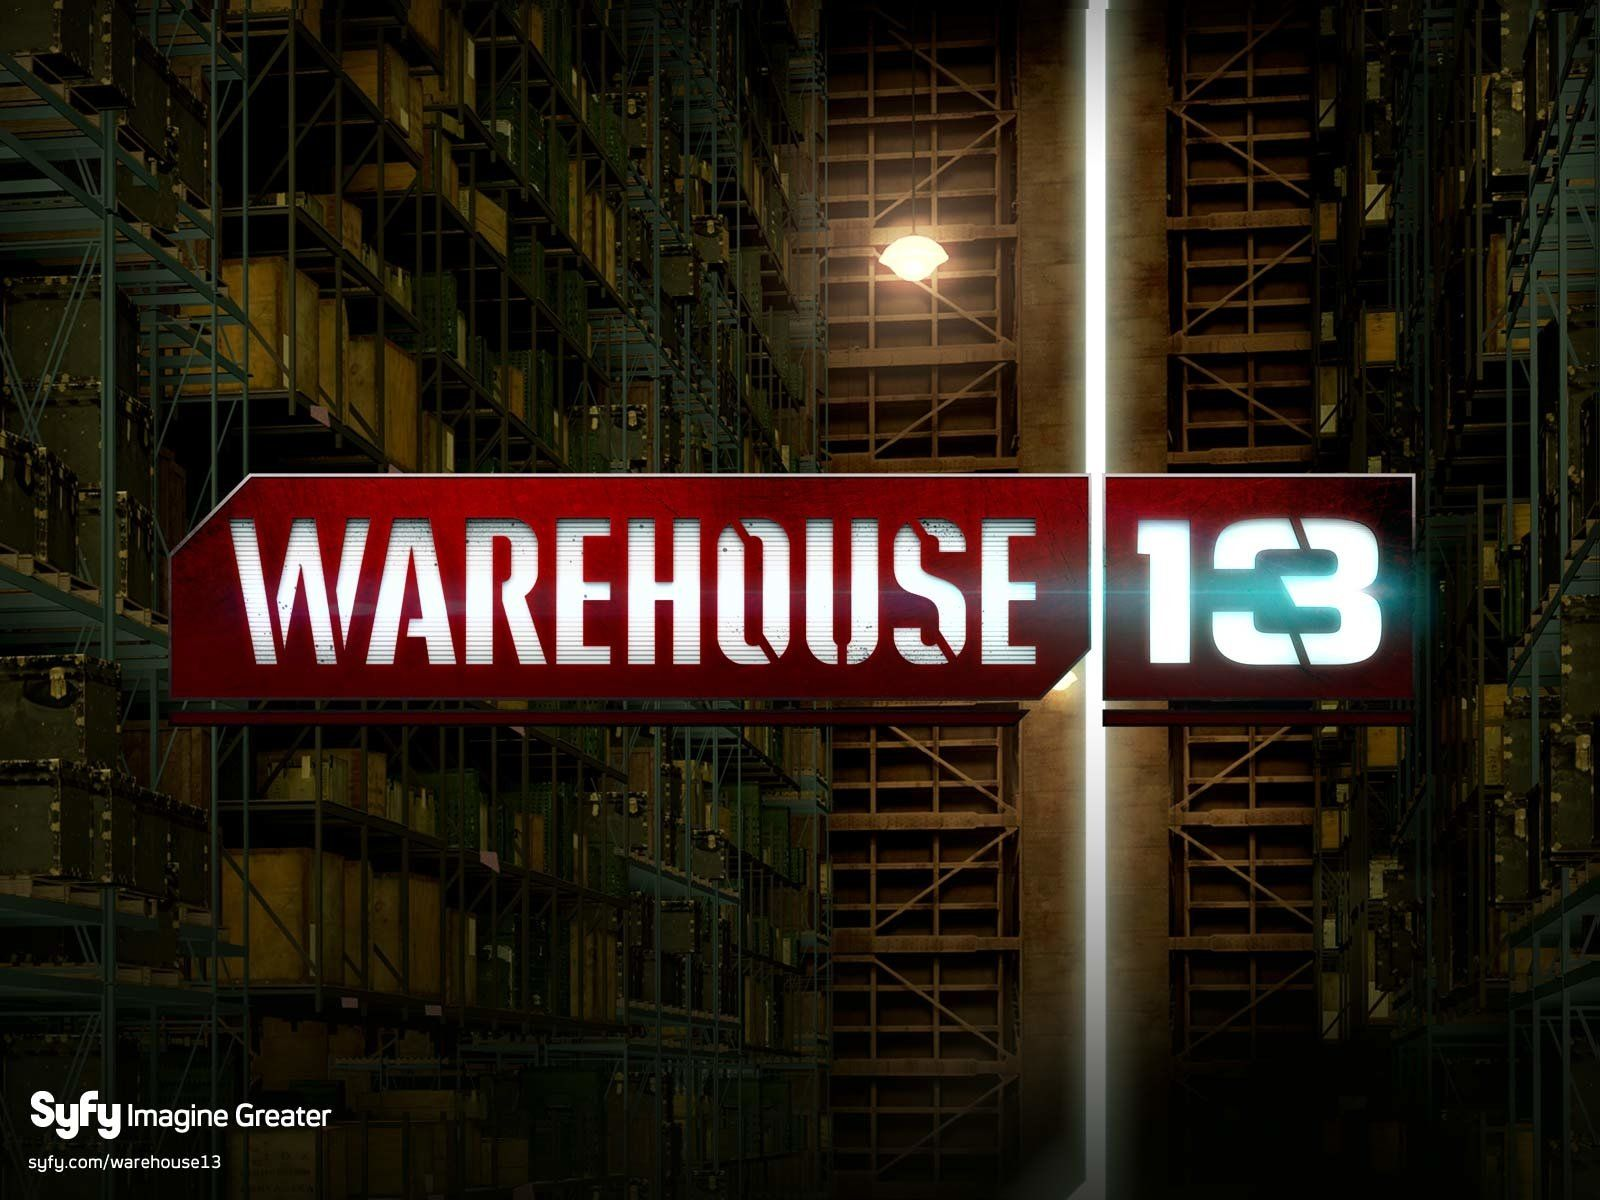 Warehouse 13 Wallpapers Top Free Warehouse 13 Backgrounds Wallpaperaccess